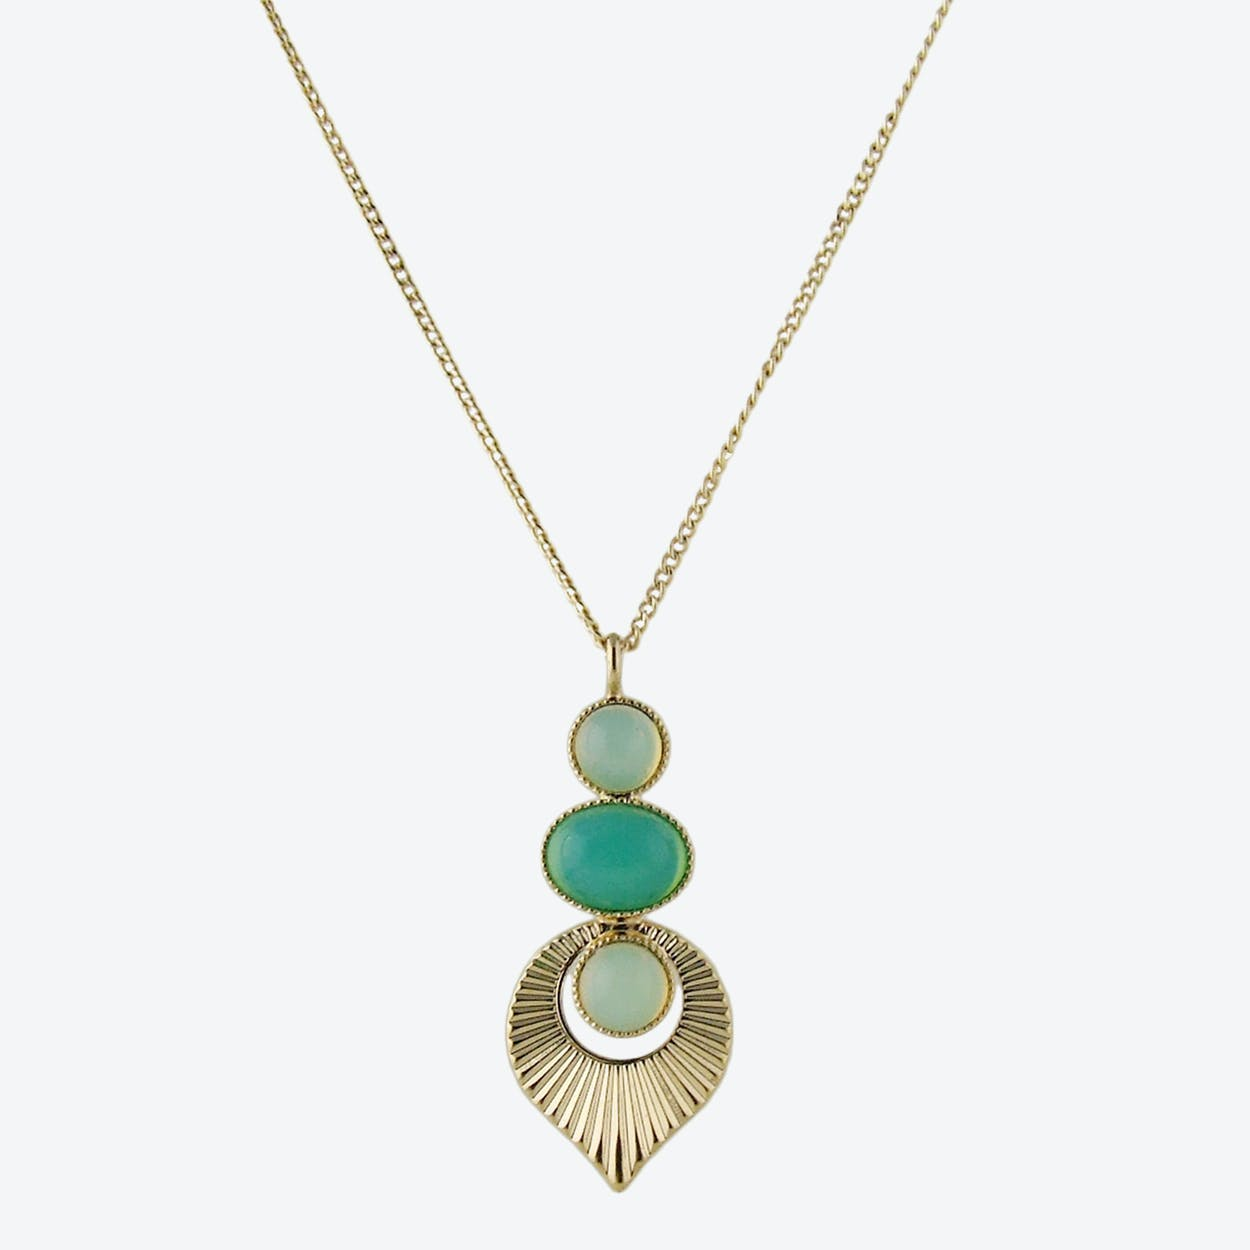 Gold Art Deco Style Pendant Necklace in Mint and Yellow